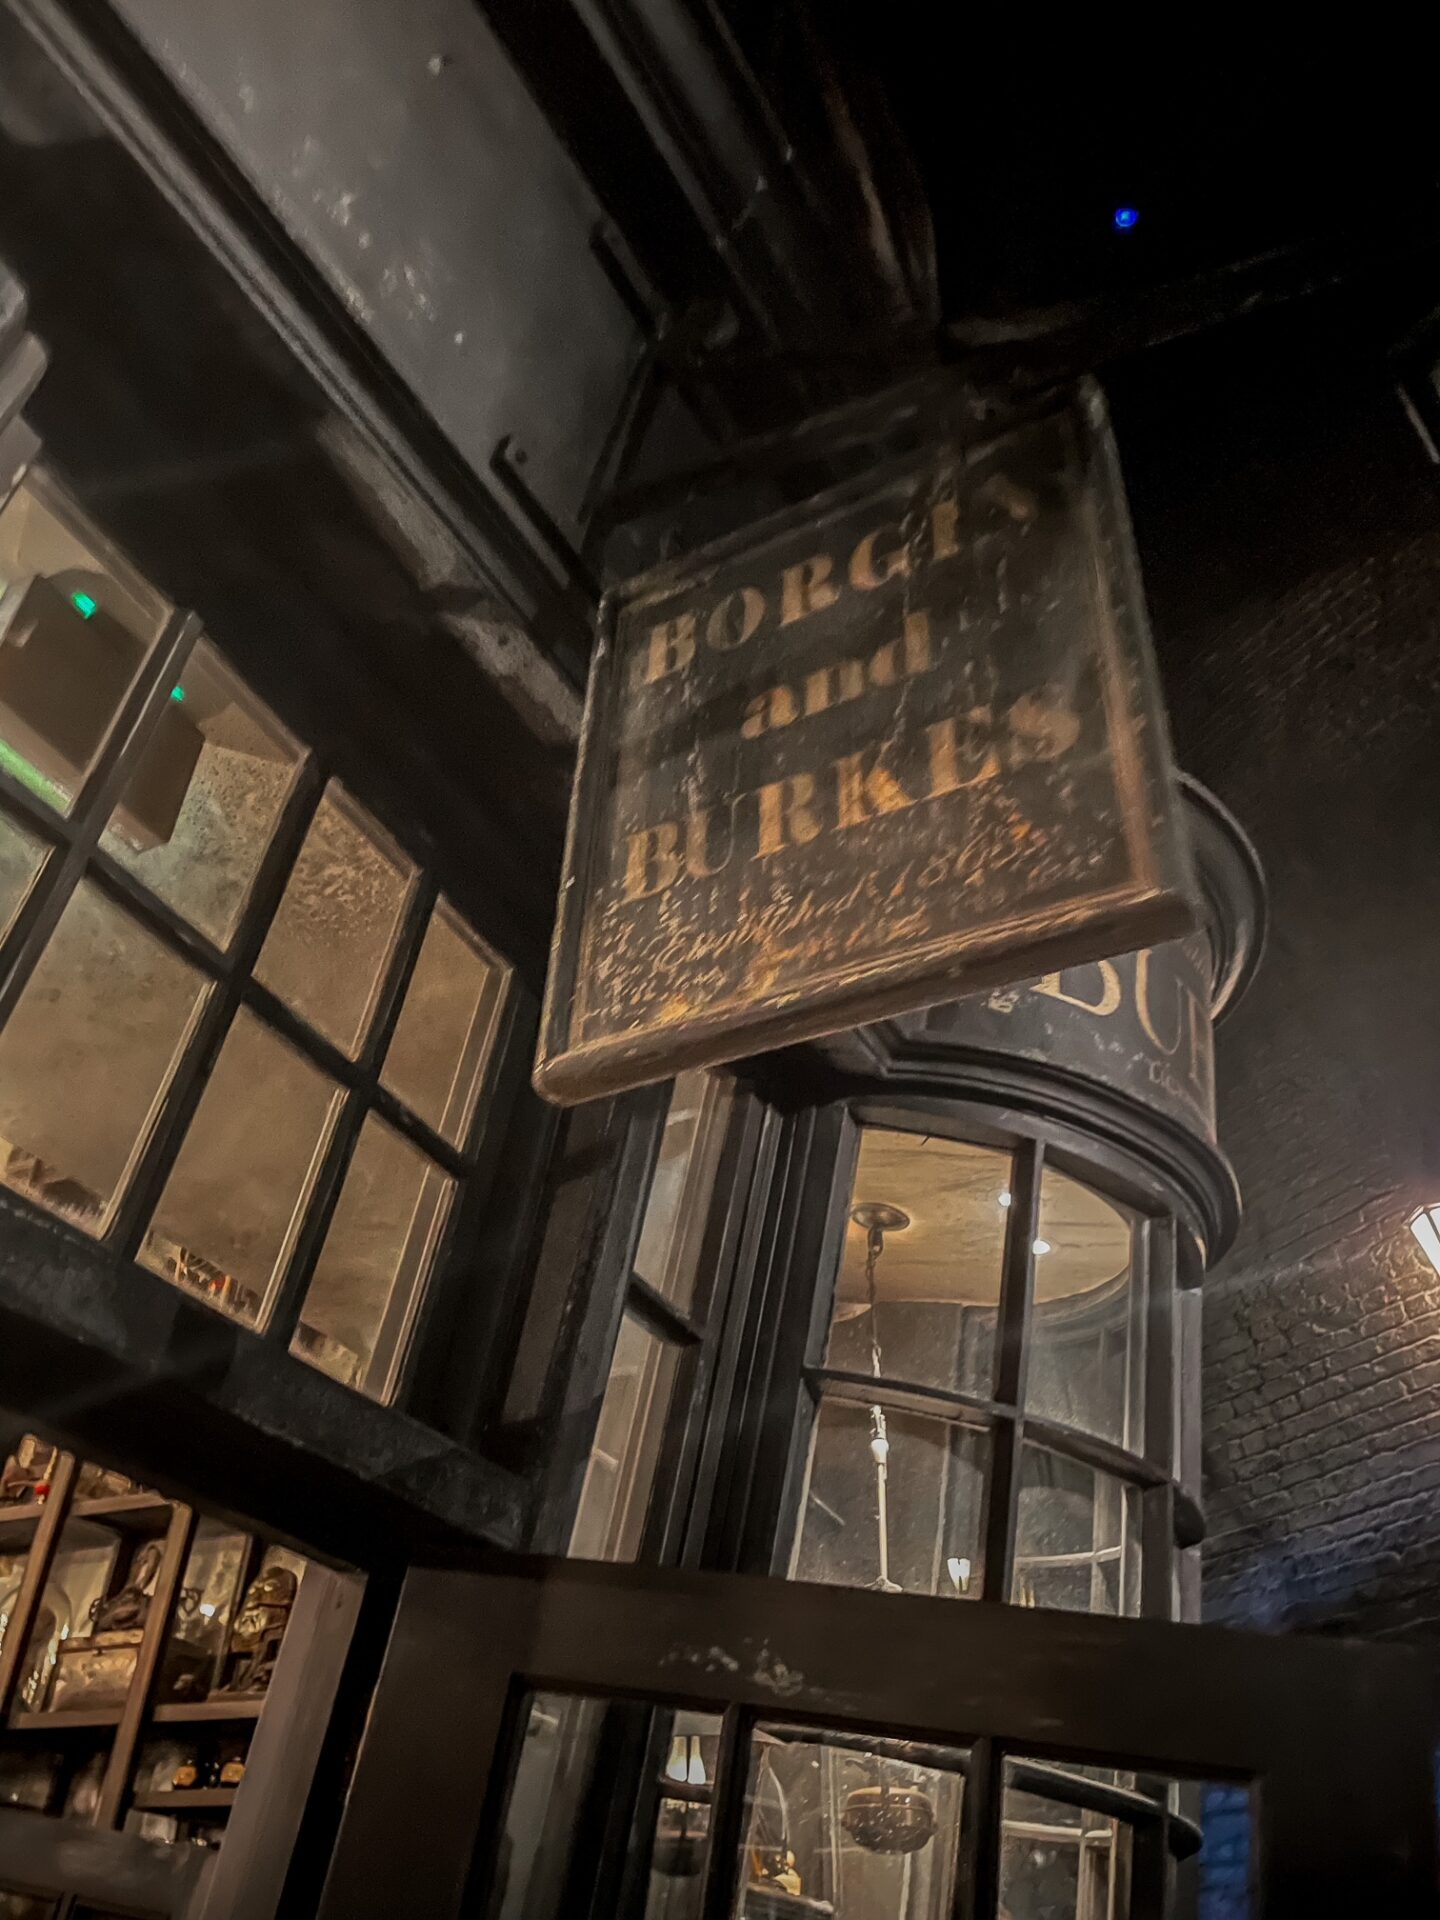 BOURGIN & BURKES in Knockturn Alley - 10 Must-See Spots at Harry Potter World in Universal Orlando!